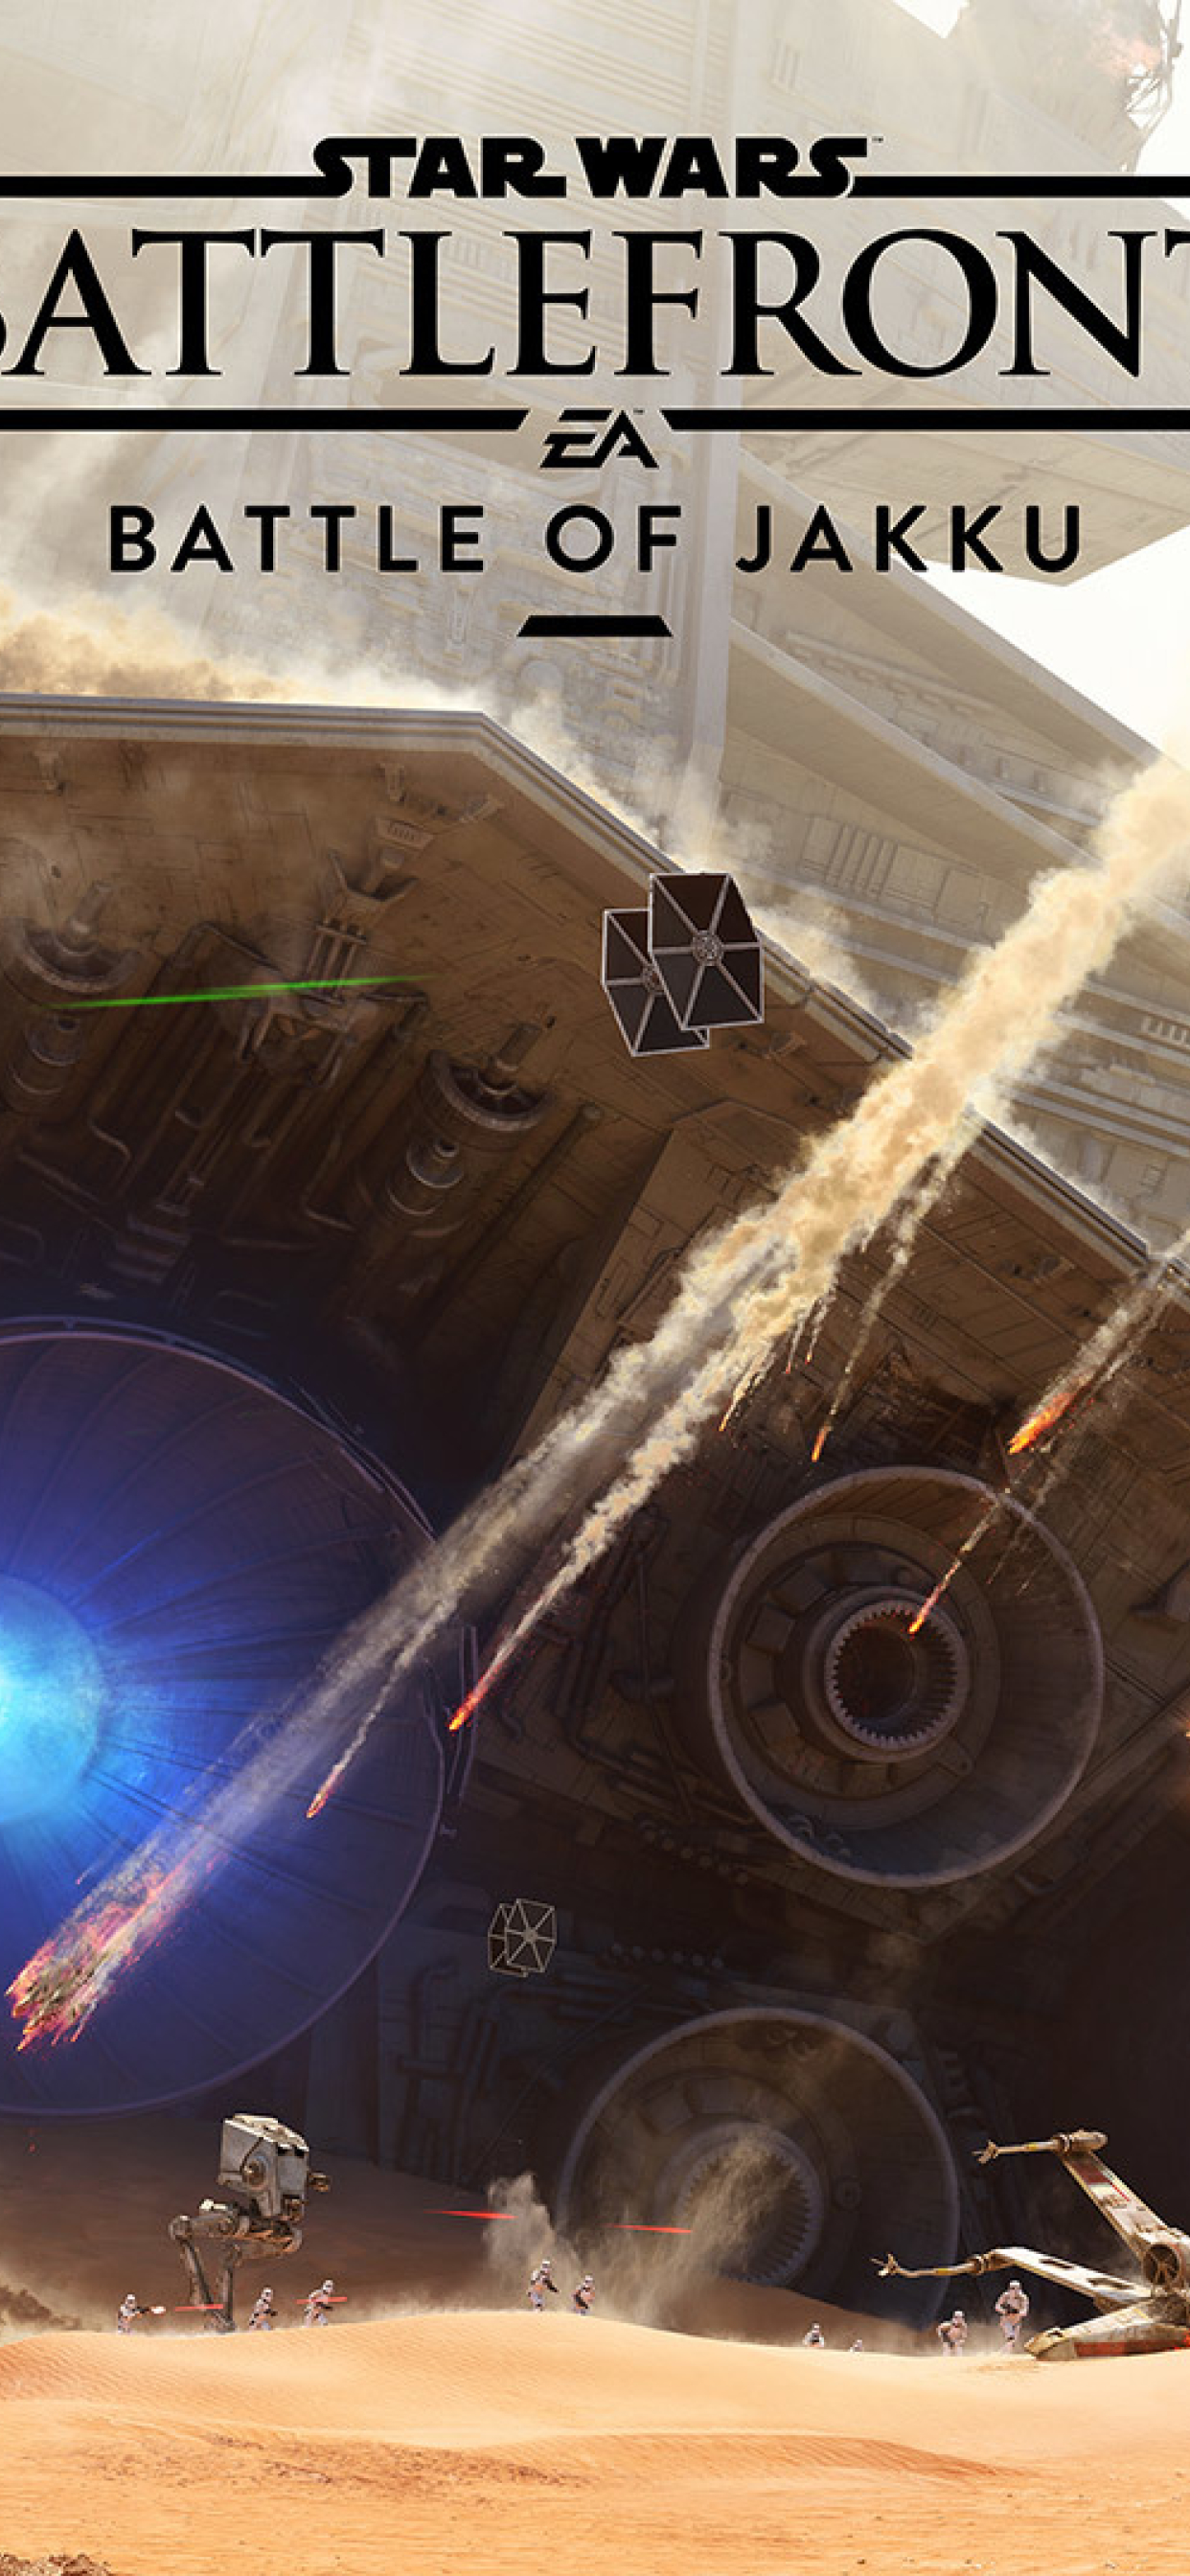 1242x2688 Star Wars Battlefront Battle Of Jakku Iphone Xs Max Wallpaper Hd Games 4k Wallpapers Images Photos And Background